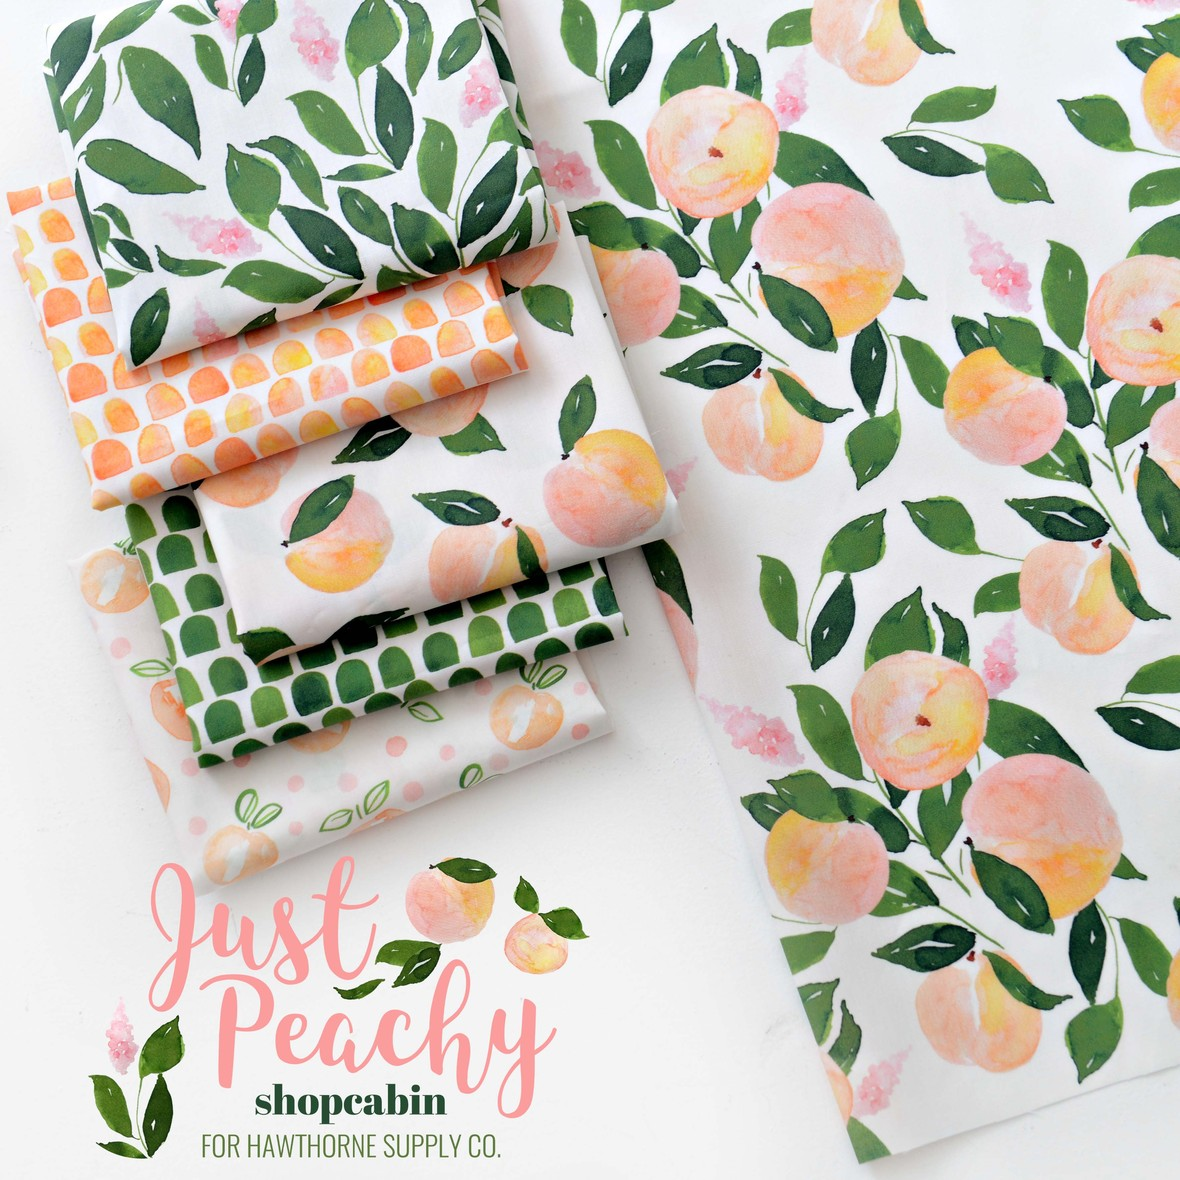 Just Peachy Fruit Fabric Shopcabin at Hawthorne Supply Co